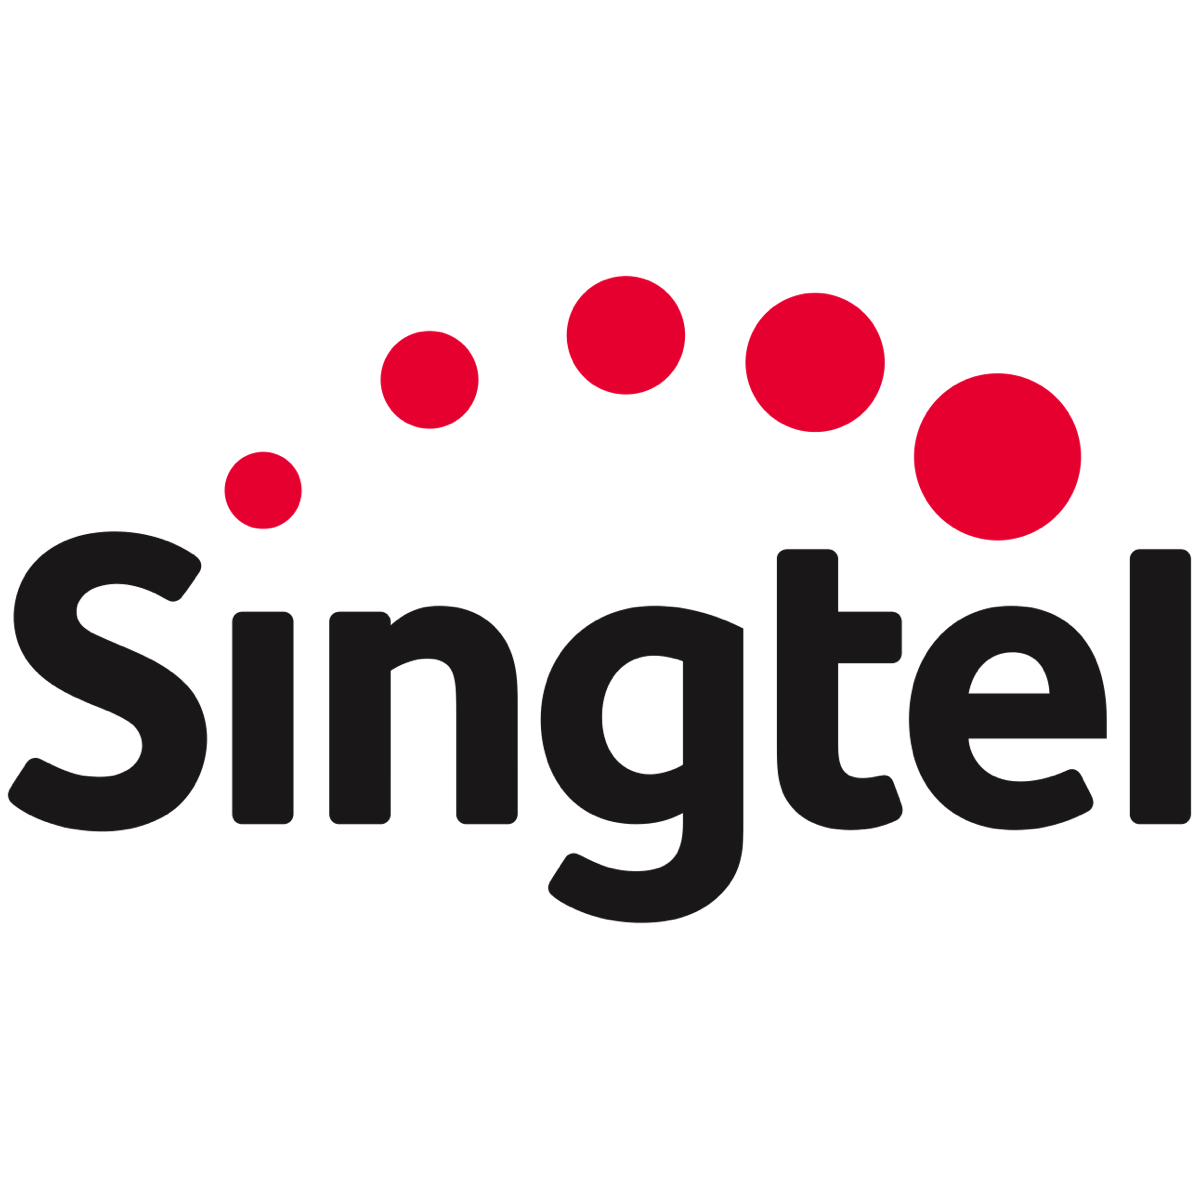 SingTel (ST SP) - DBS Vickers 2017-11-09: Far Ahead Of Its Peers In Digital Transformation